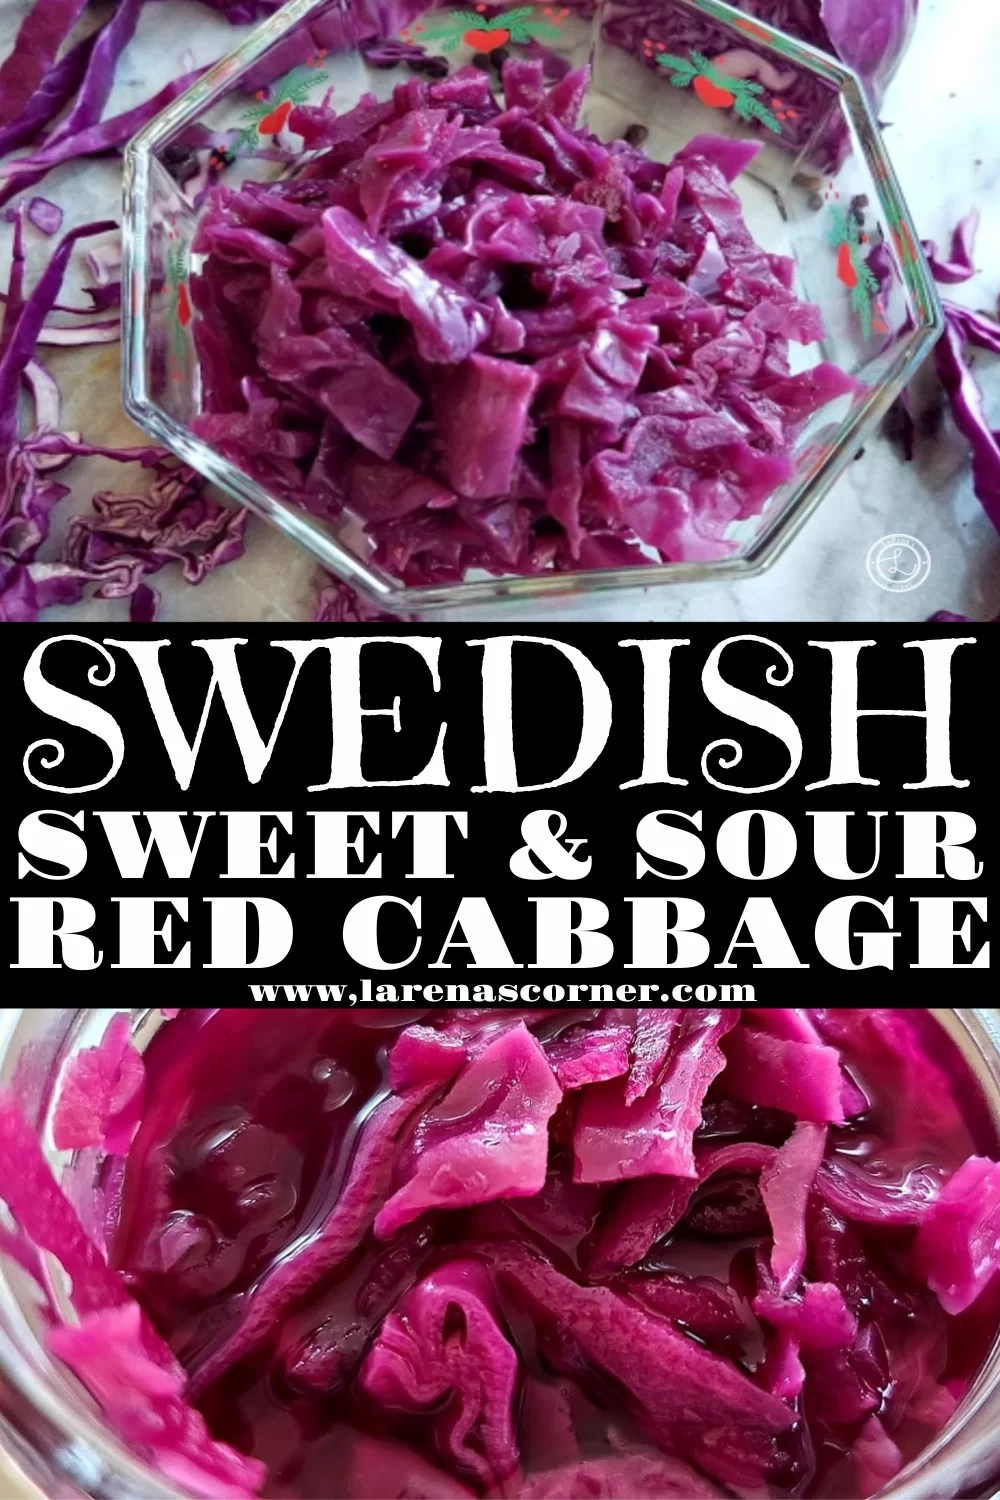 Swedish Sweet & Sour Red Cabbage